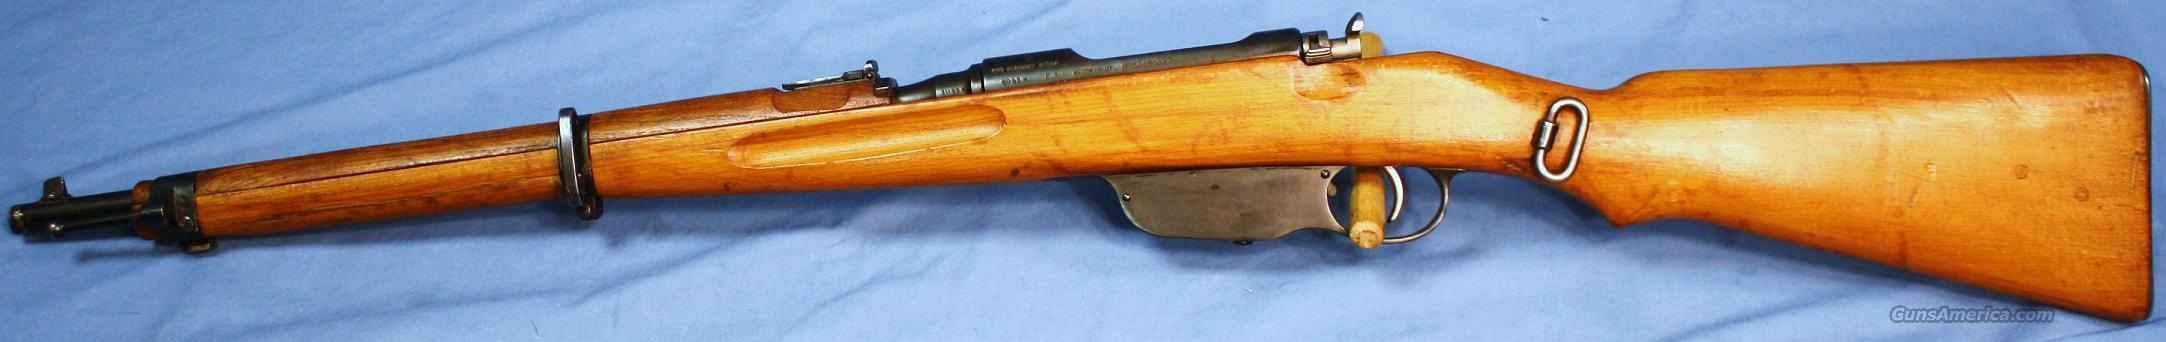 Hungarian Steyr M95 Budapest Bolt Action Rifle 8x56R